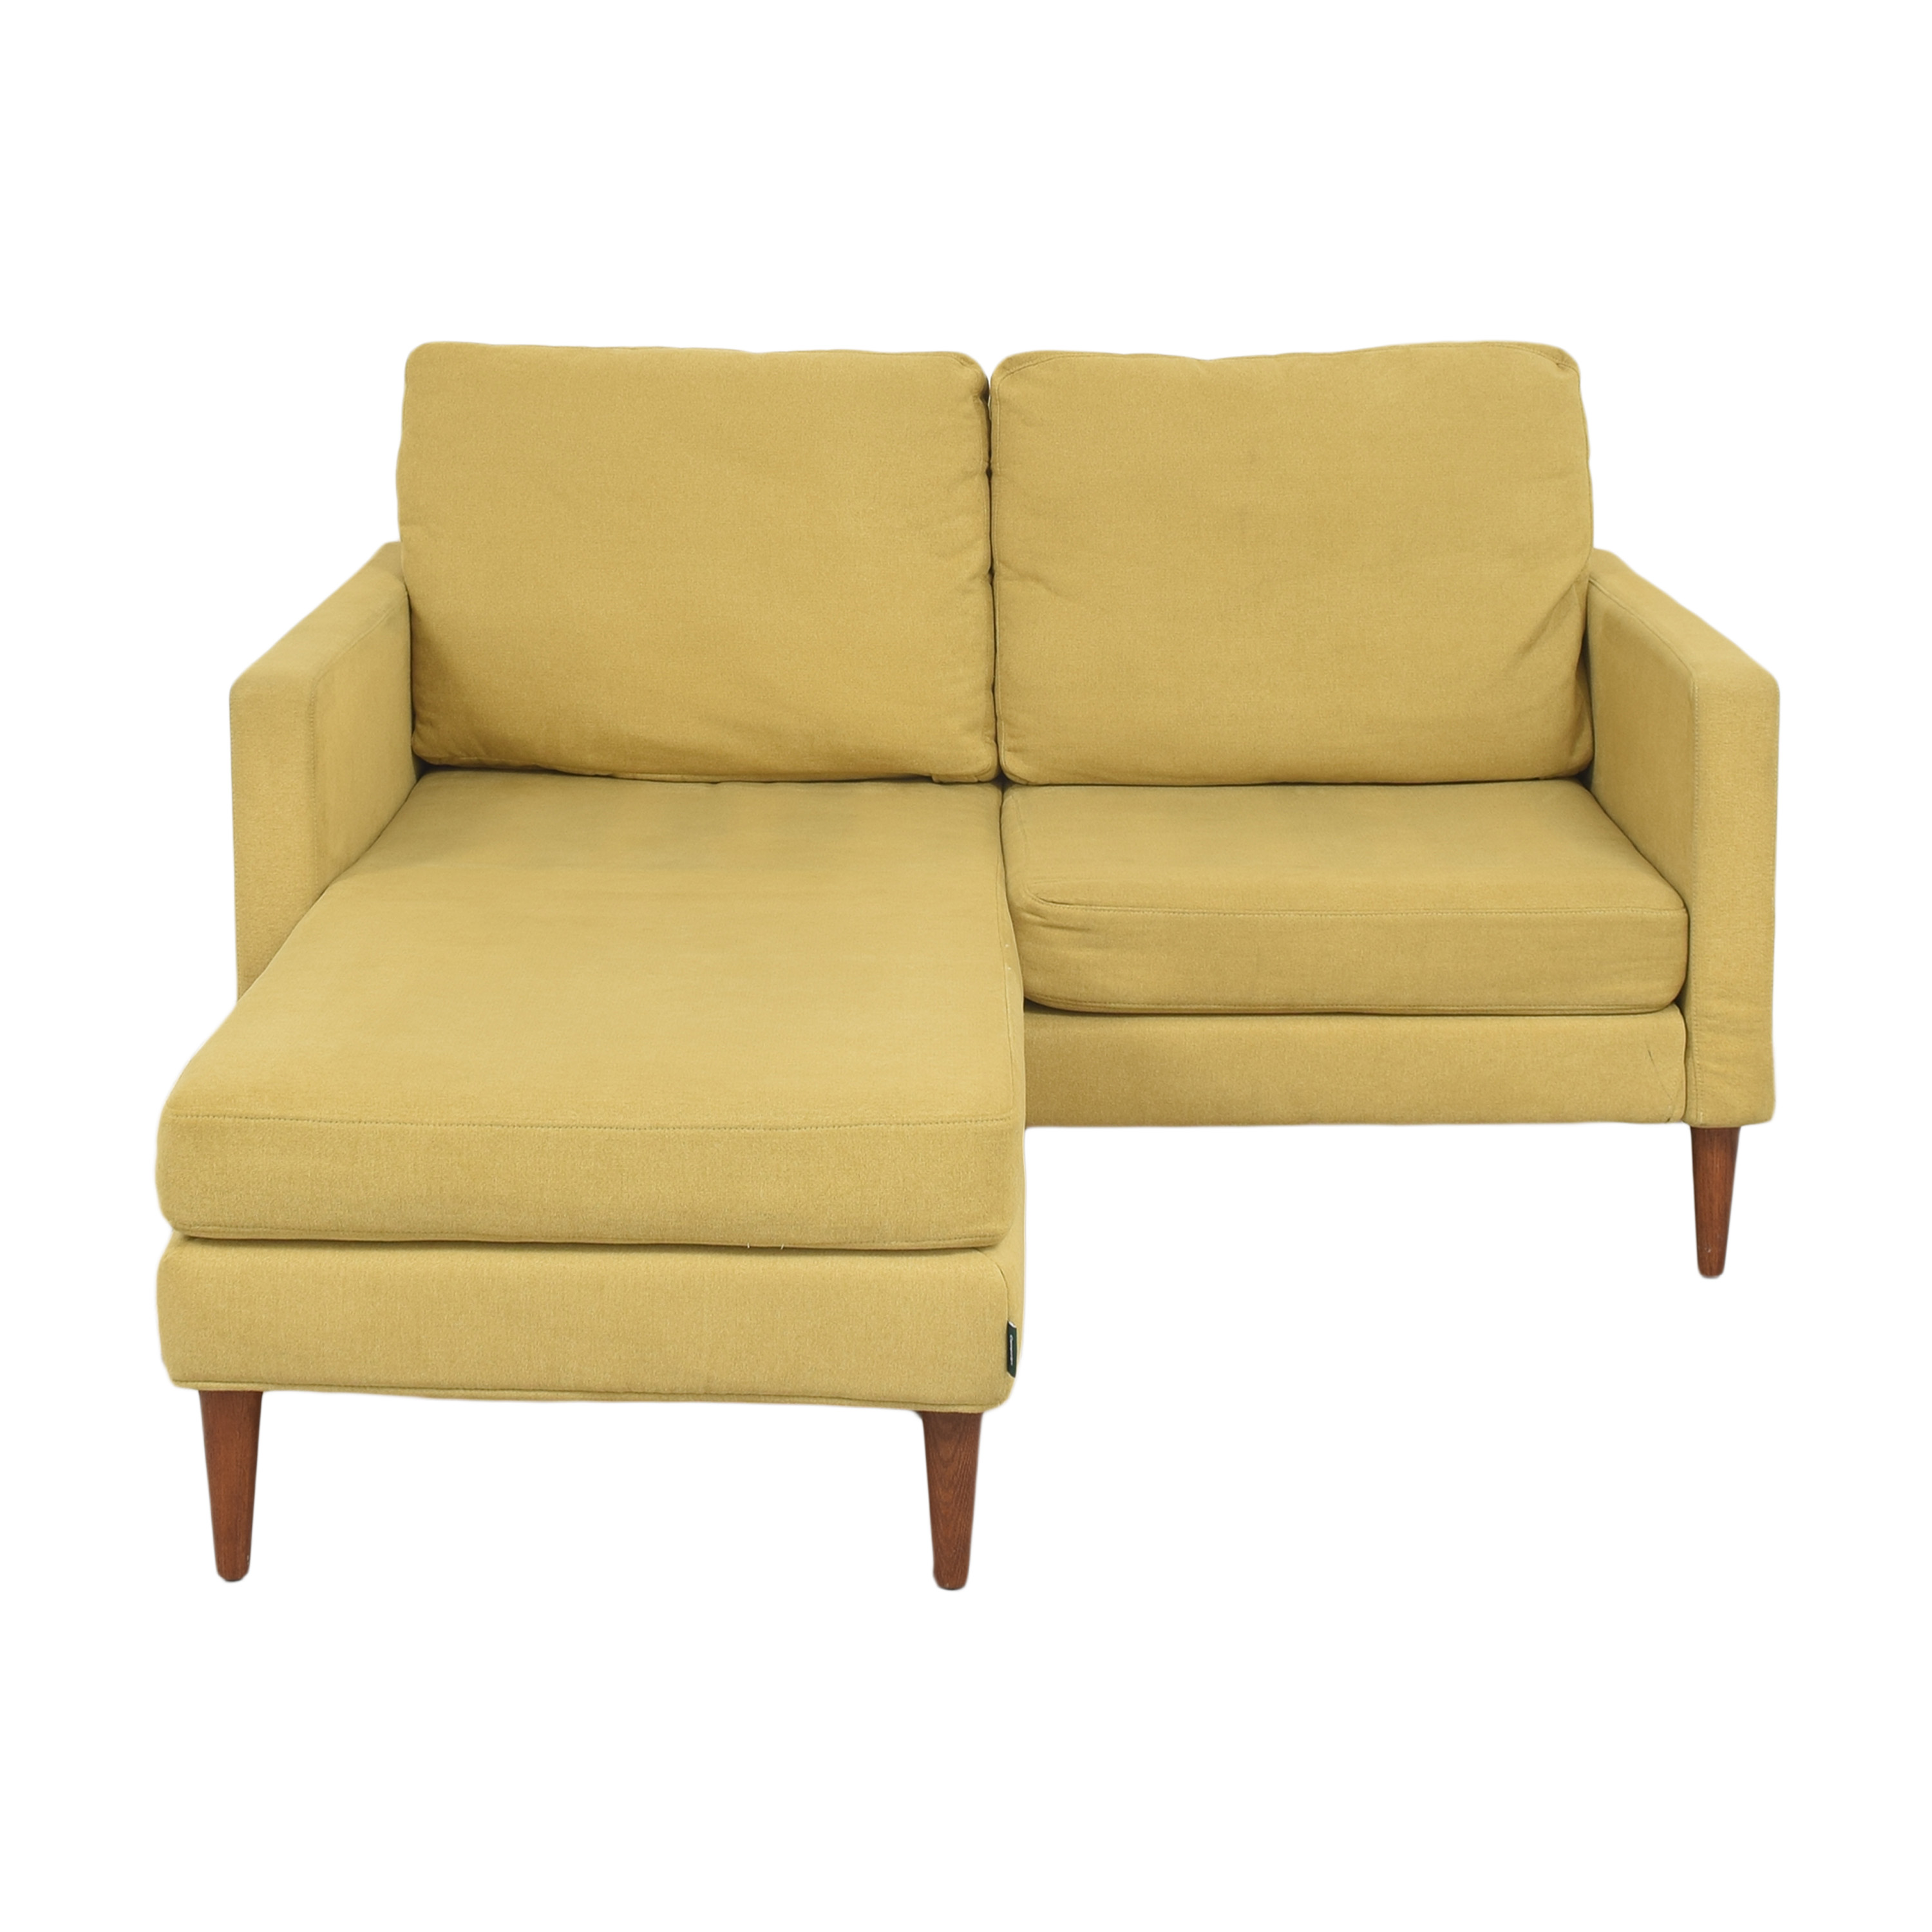 Campaign Campaign Loveseat Sectional Sofa ct